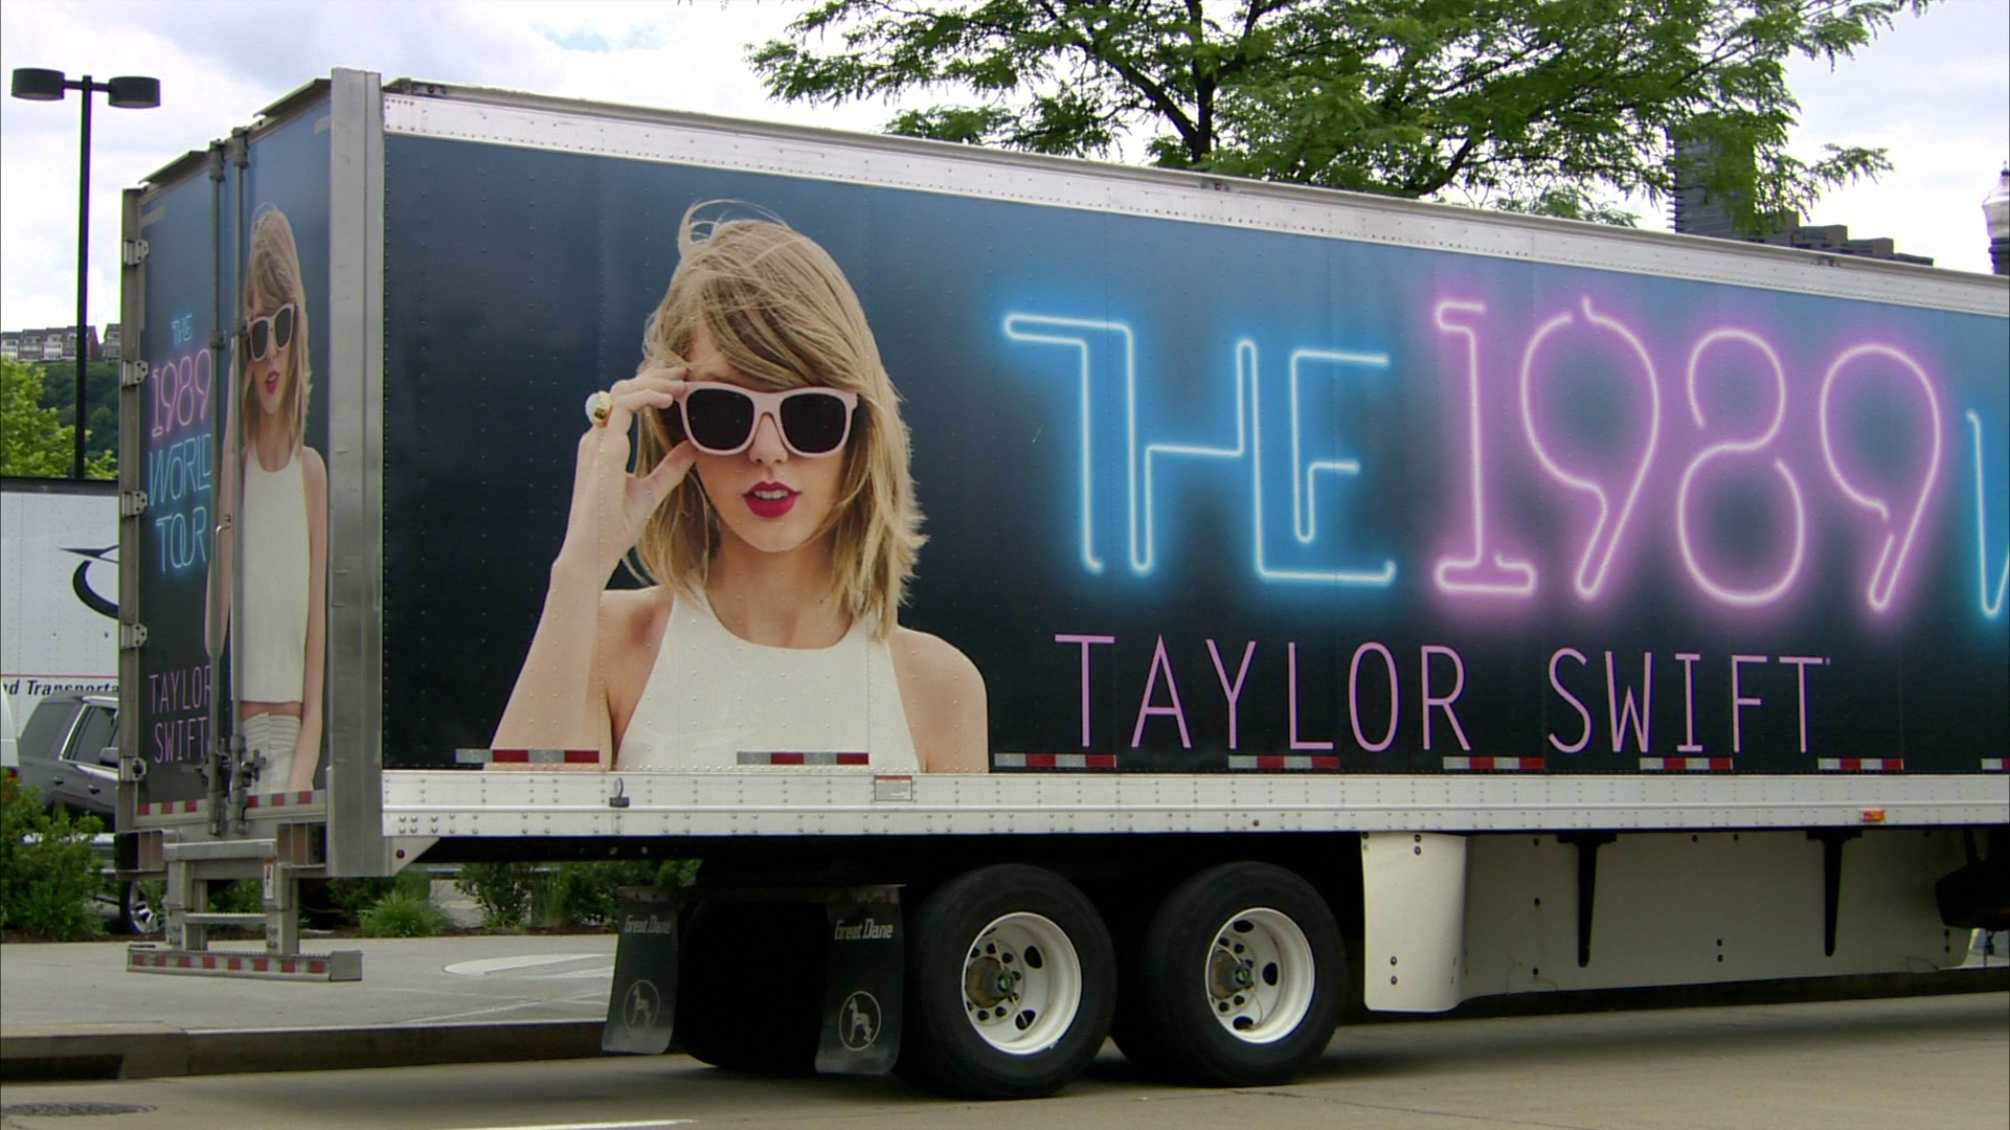 A truck from the Taylor Swift 1989 World Tour.